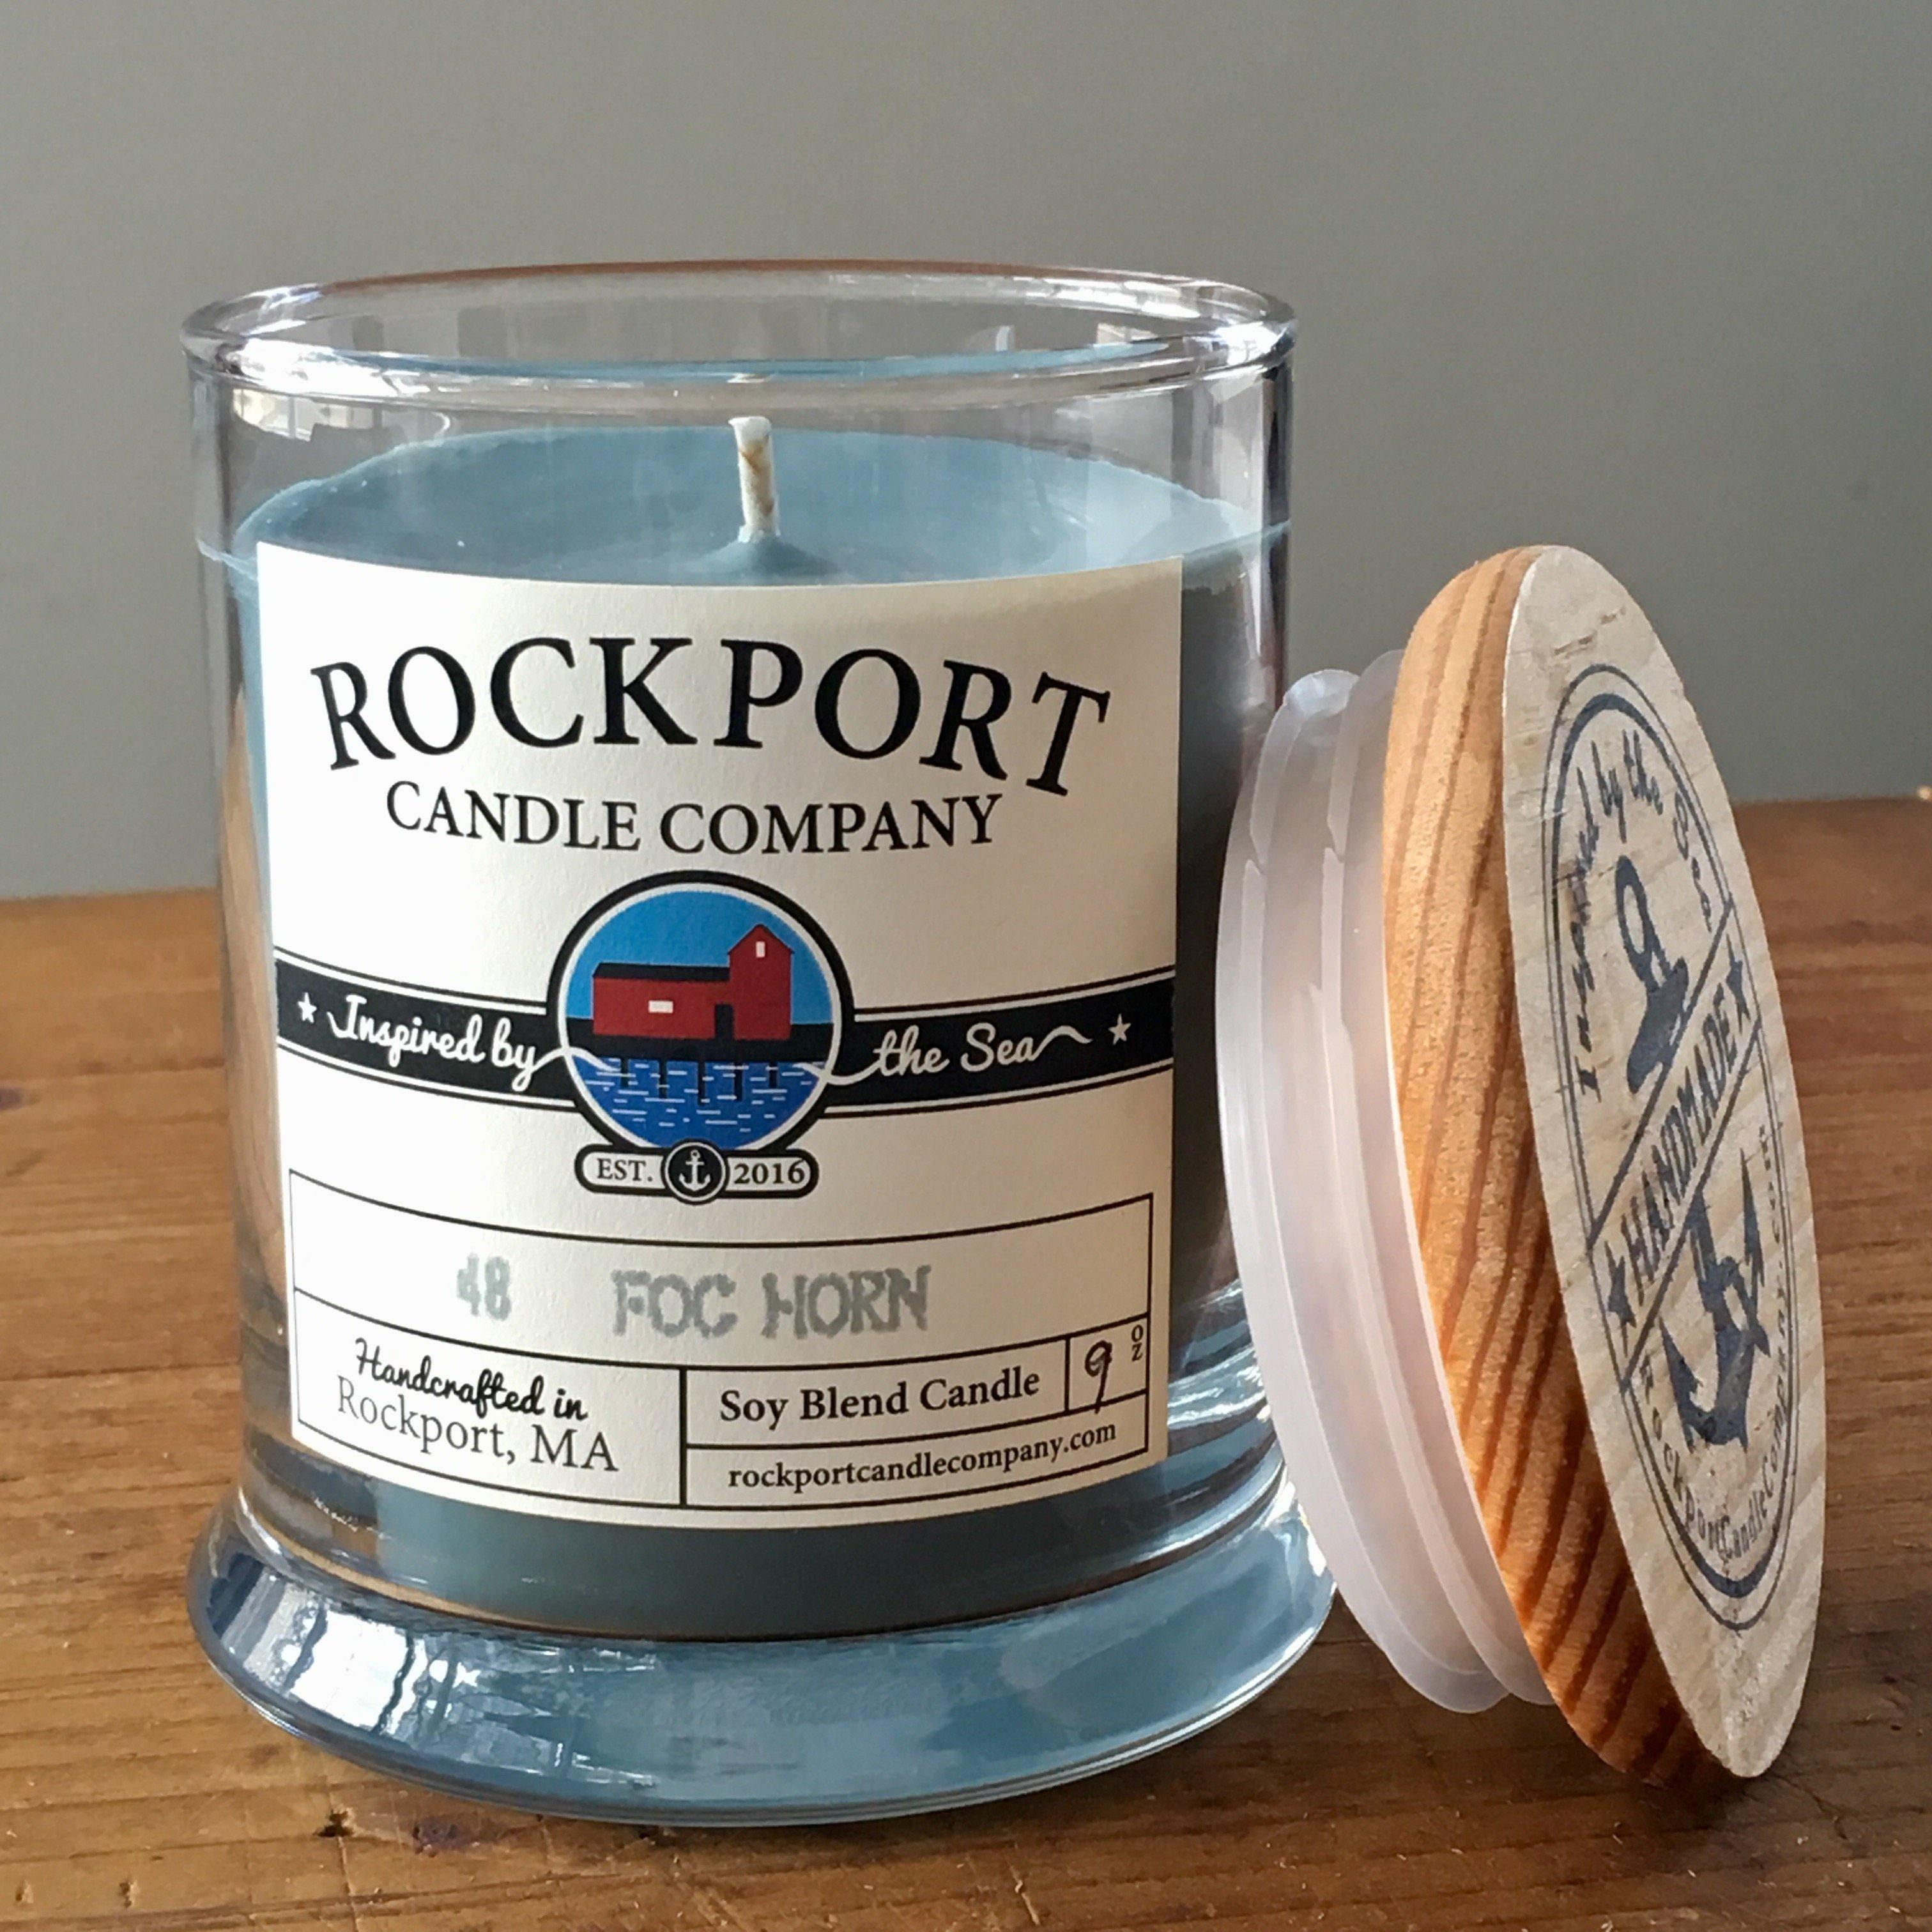 48 Fog Horn Candle Rockport Candle Company